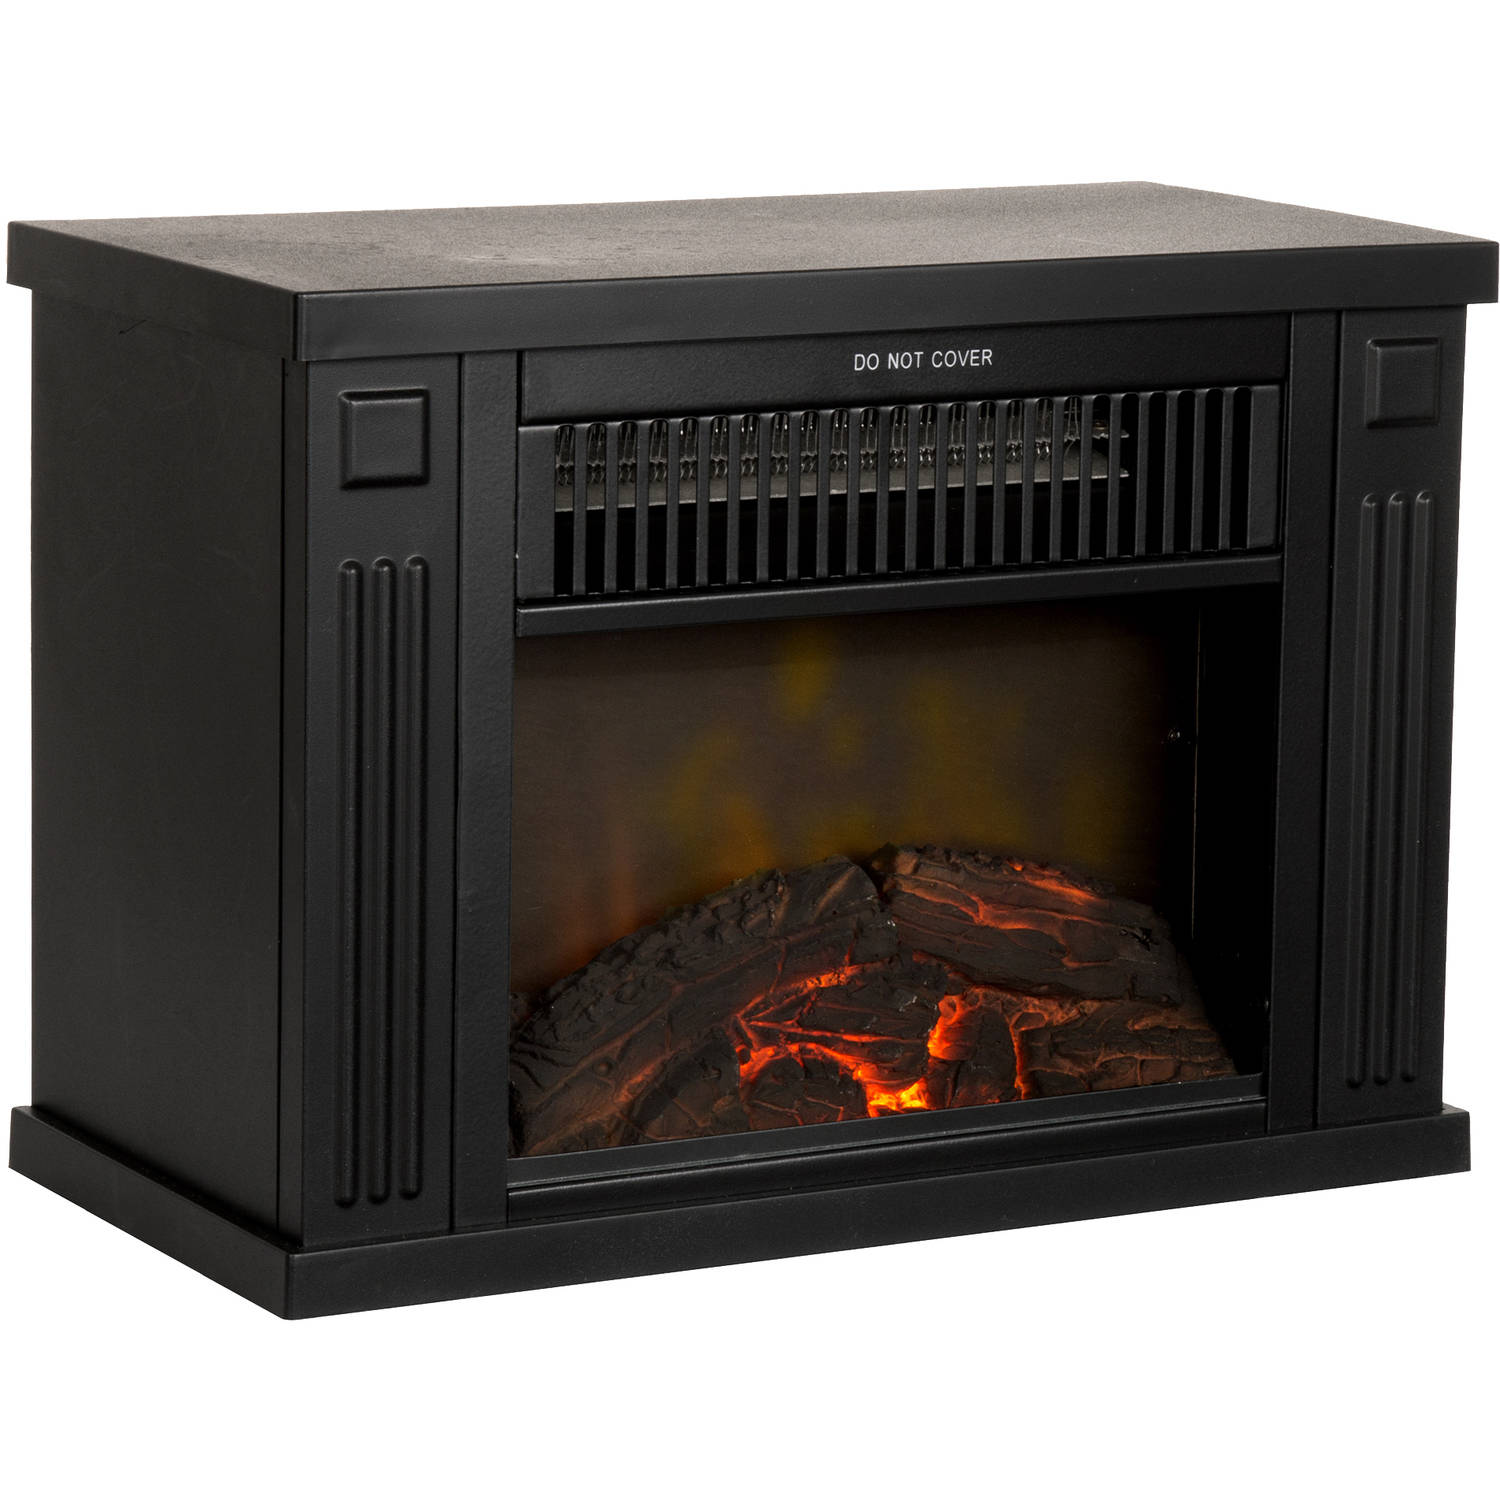 infrared unit of modern page built wall corner mount chimney costco unique in contemporary free black flat collections mounted screen electric lots big fireplace